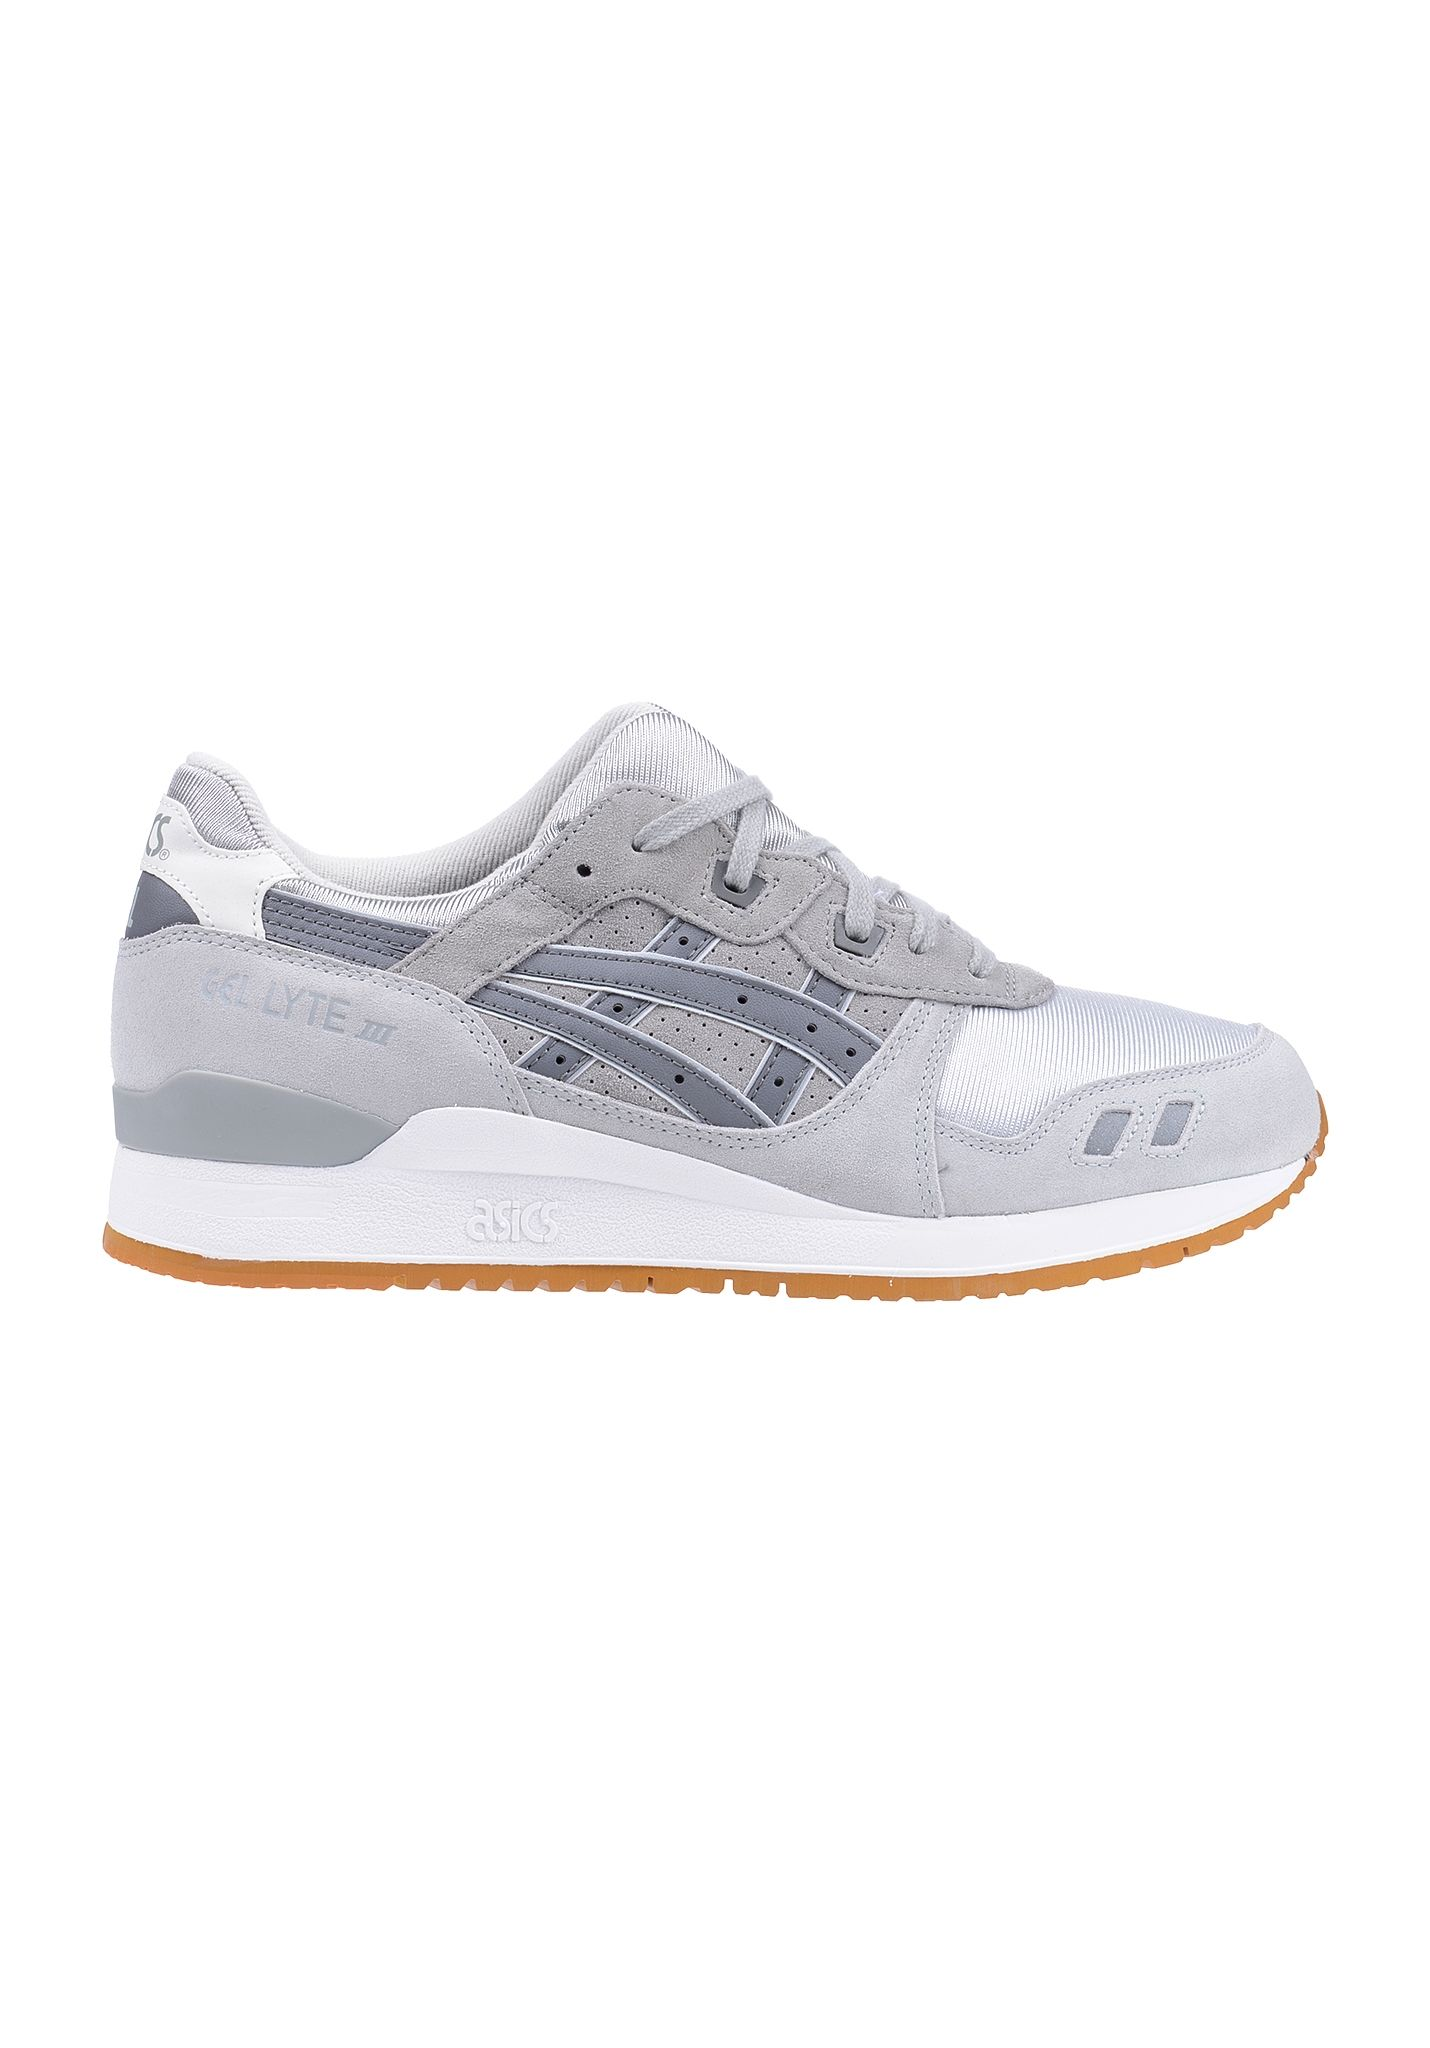 grossiste 70661 6a7fb asics gel lyte 3 grise blanche